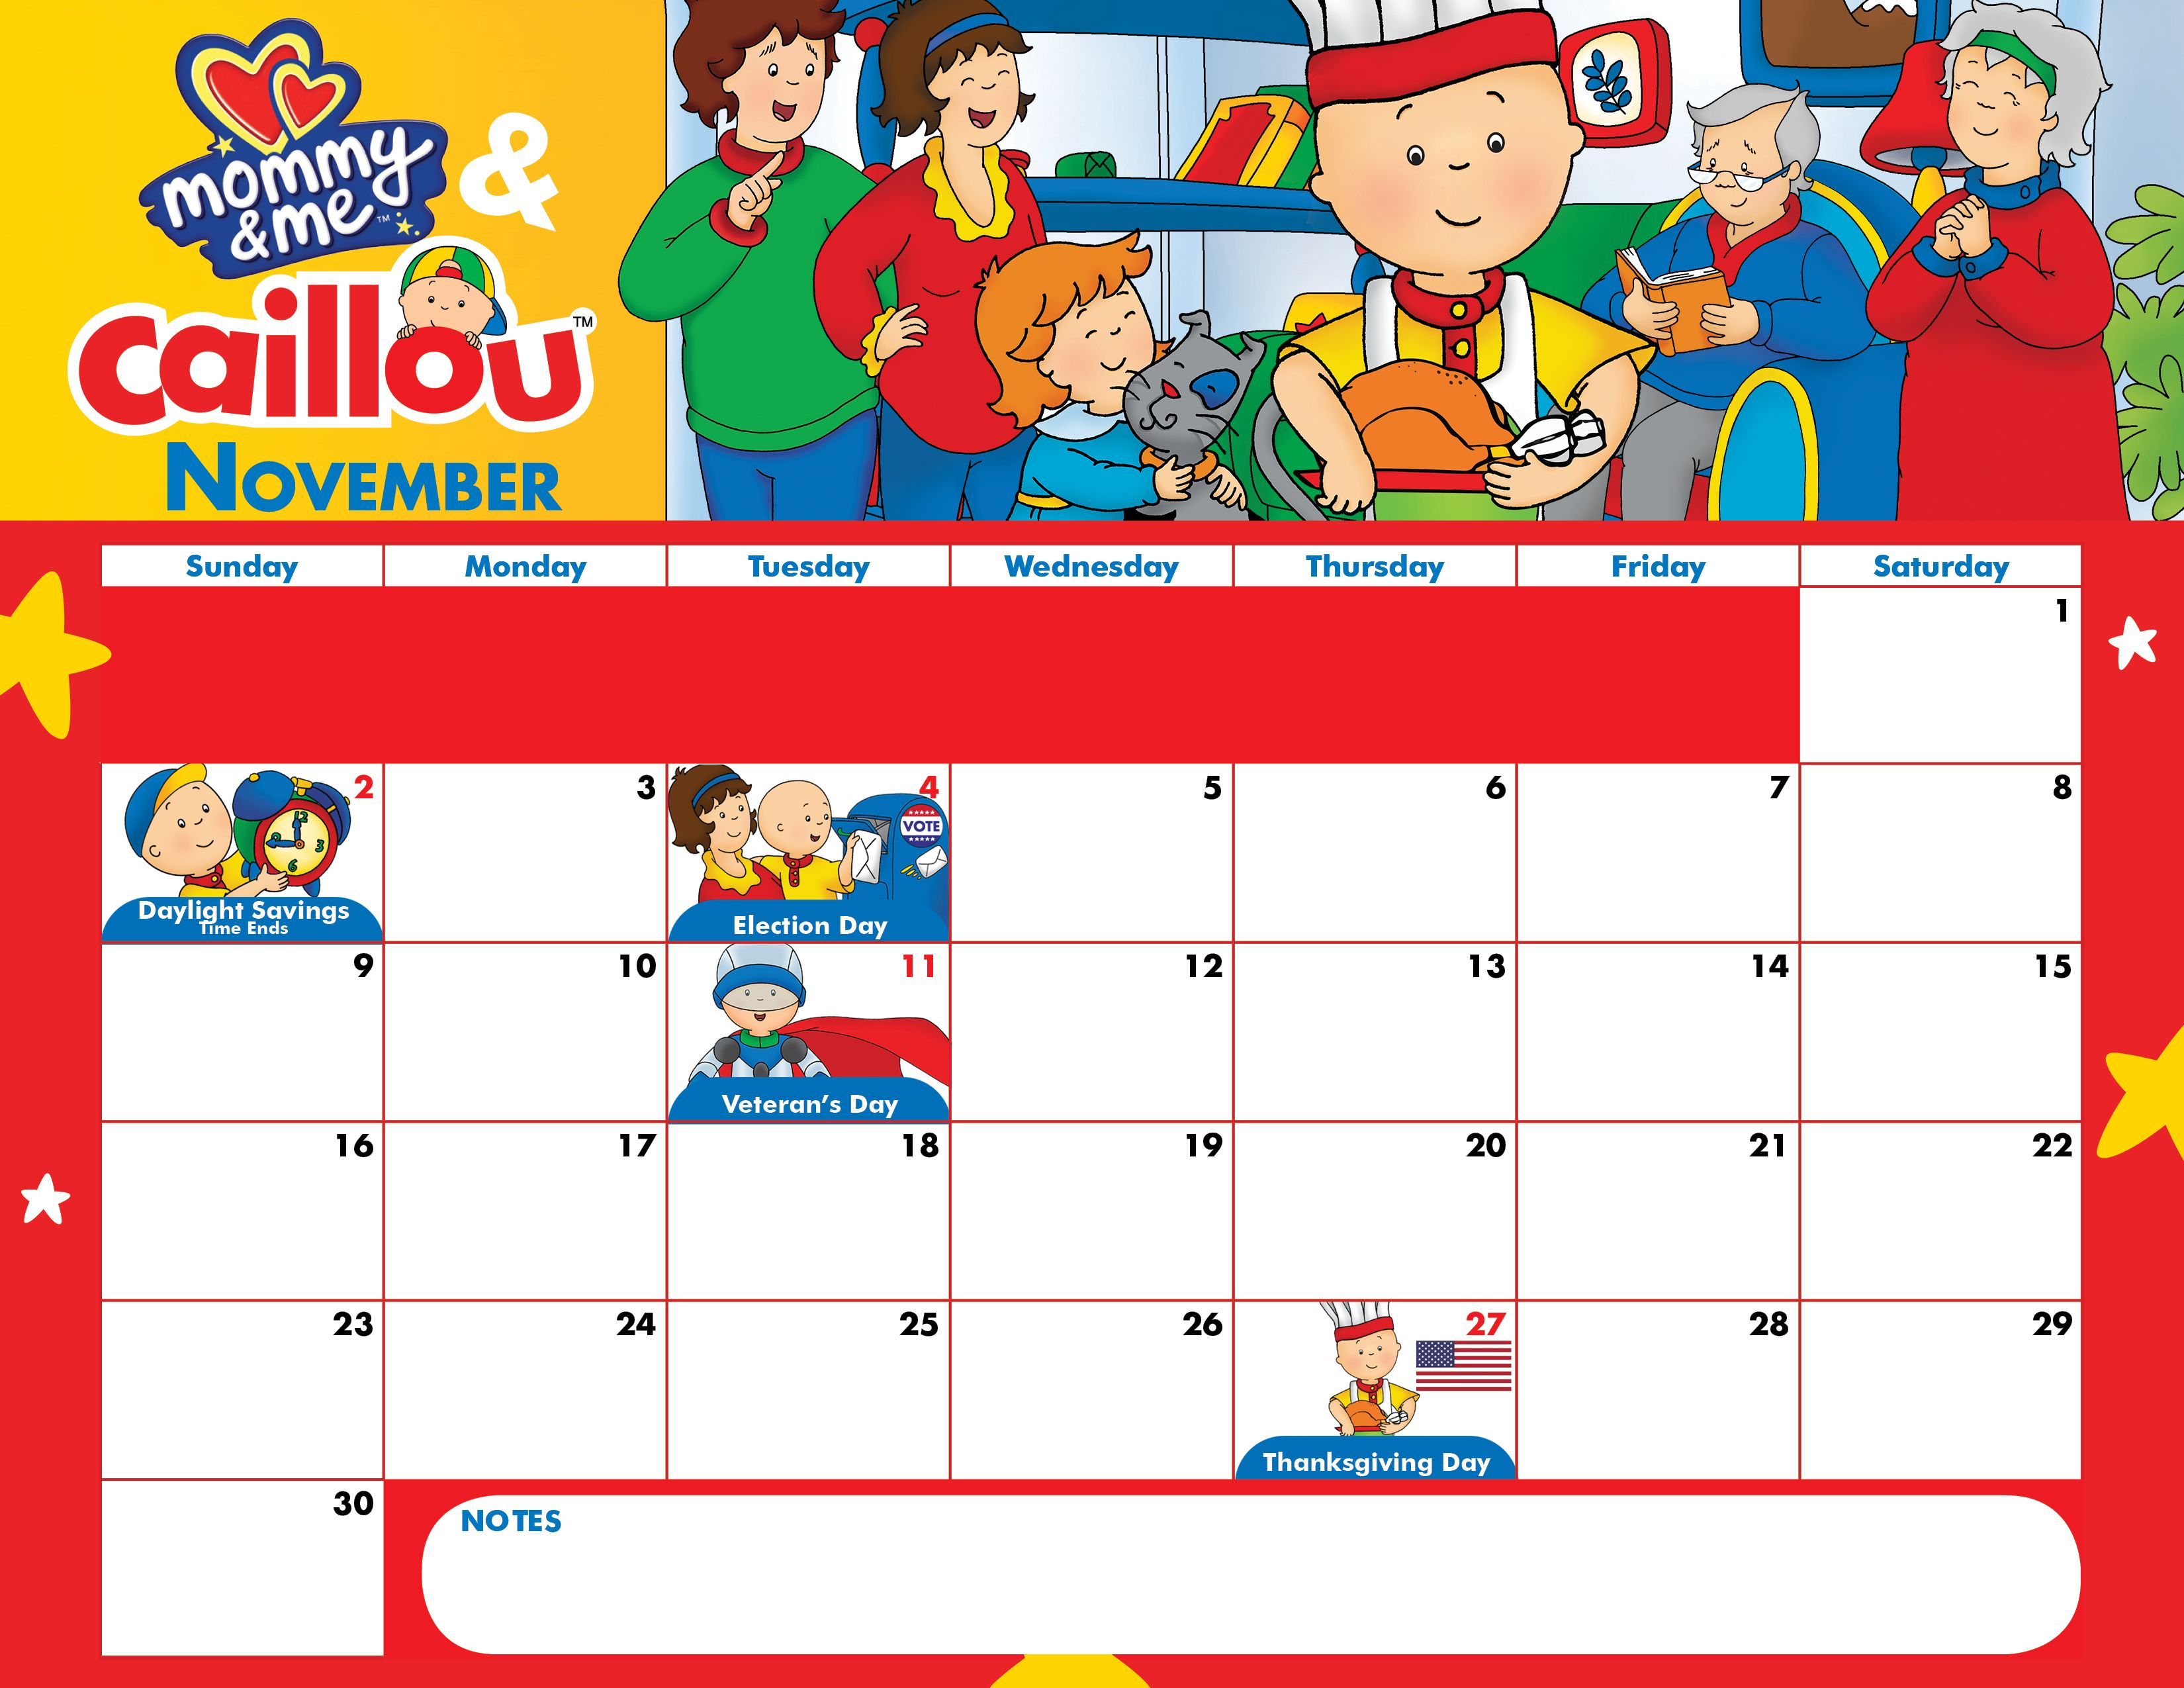 Celebrate November With This Adorable Mommy Amp Me And Caillou Calendar Download This Free